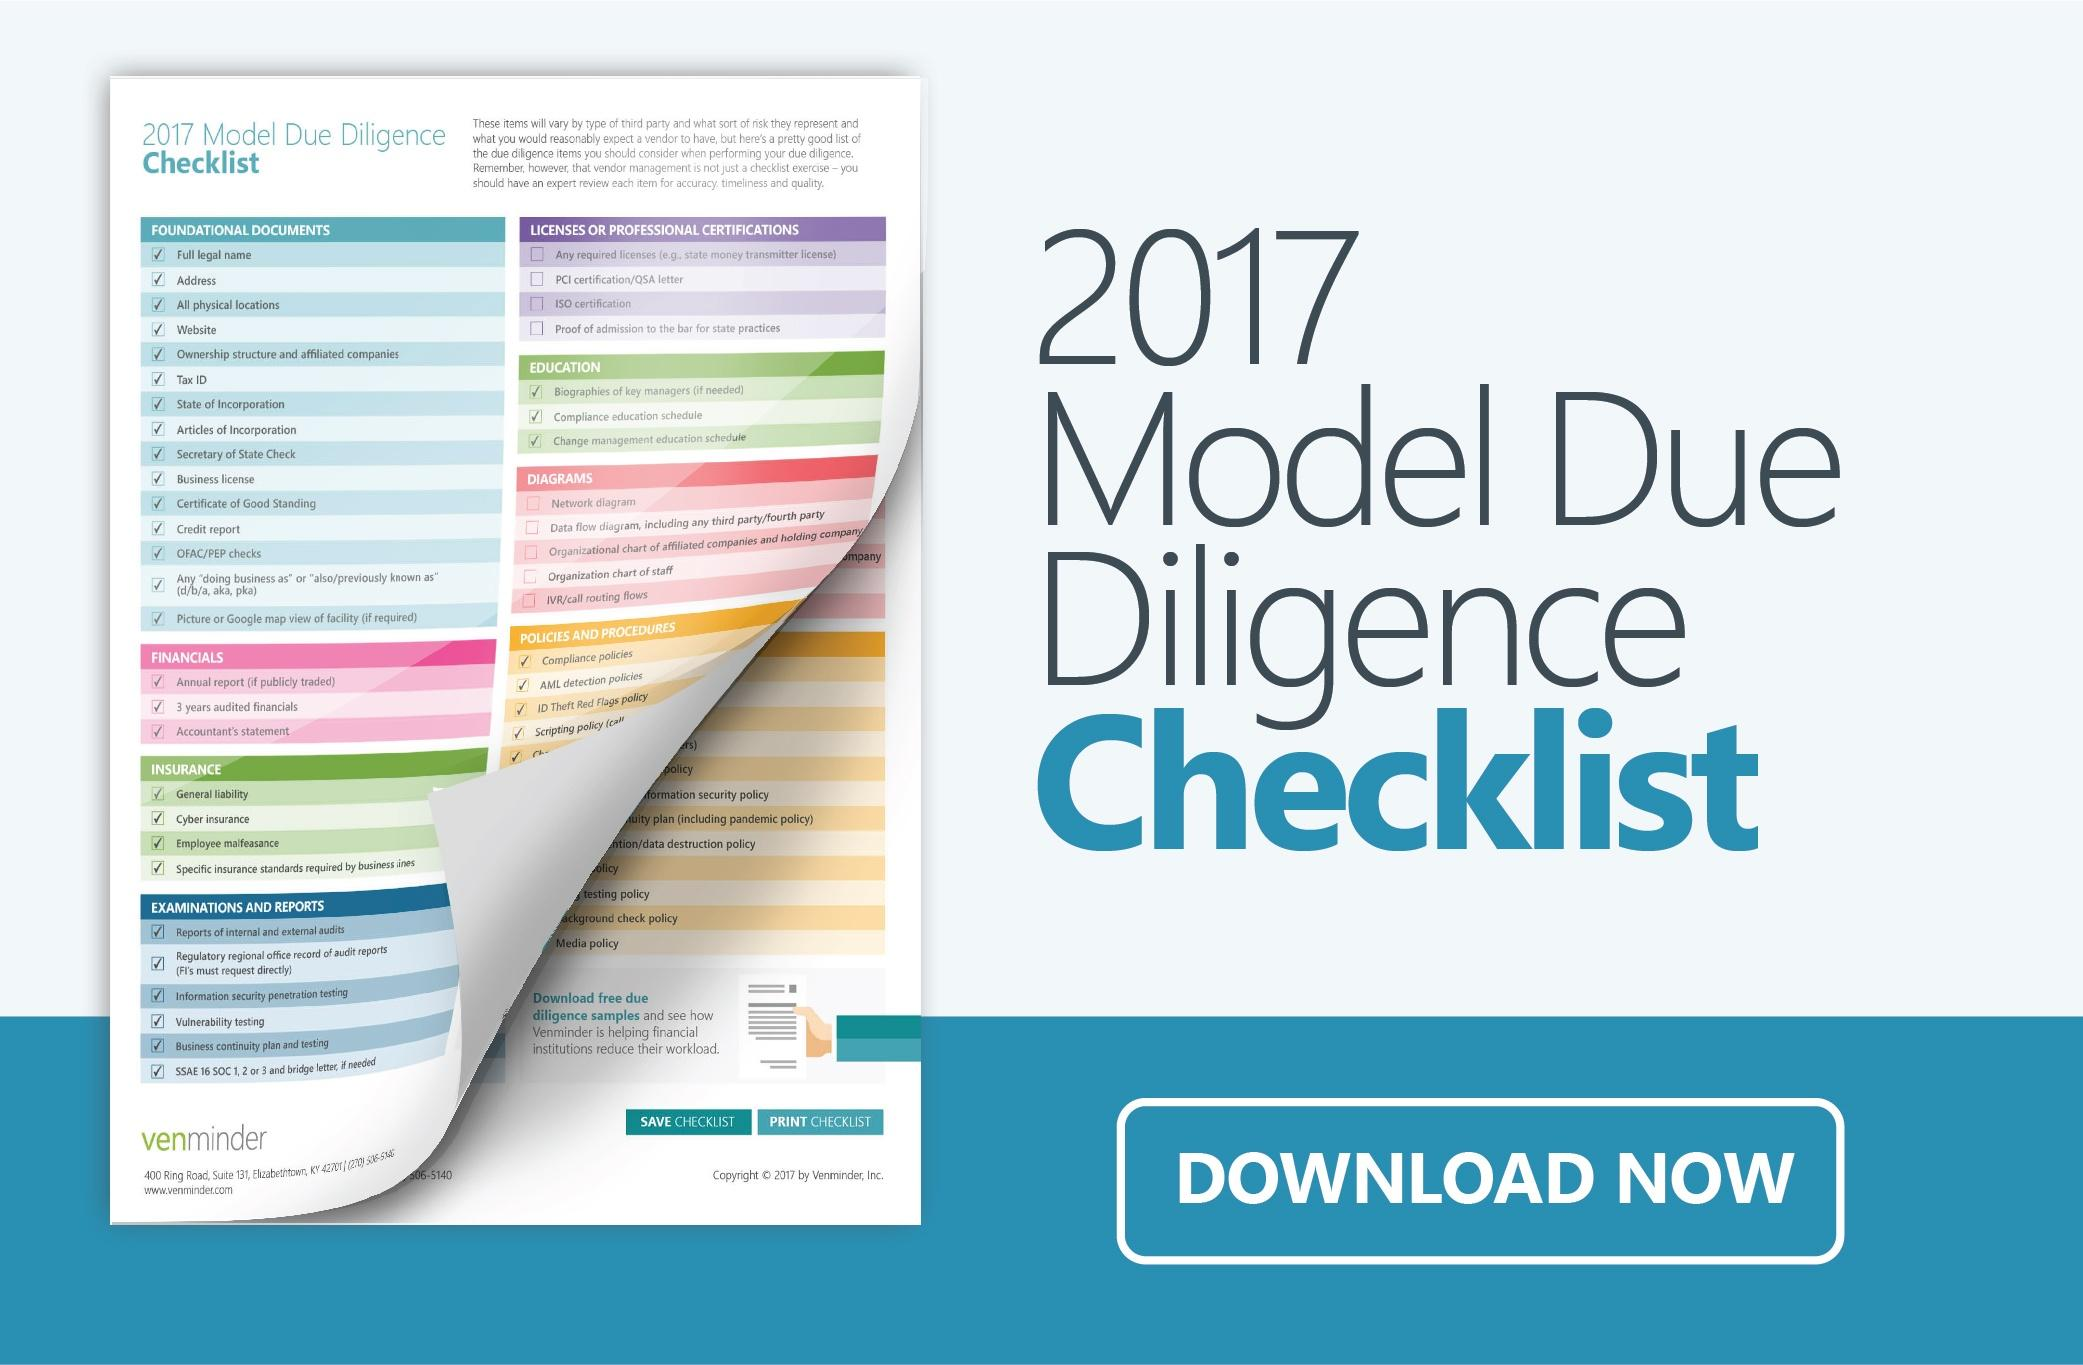 Vendor Management Model Due Diligence Checklist